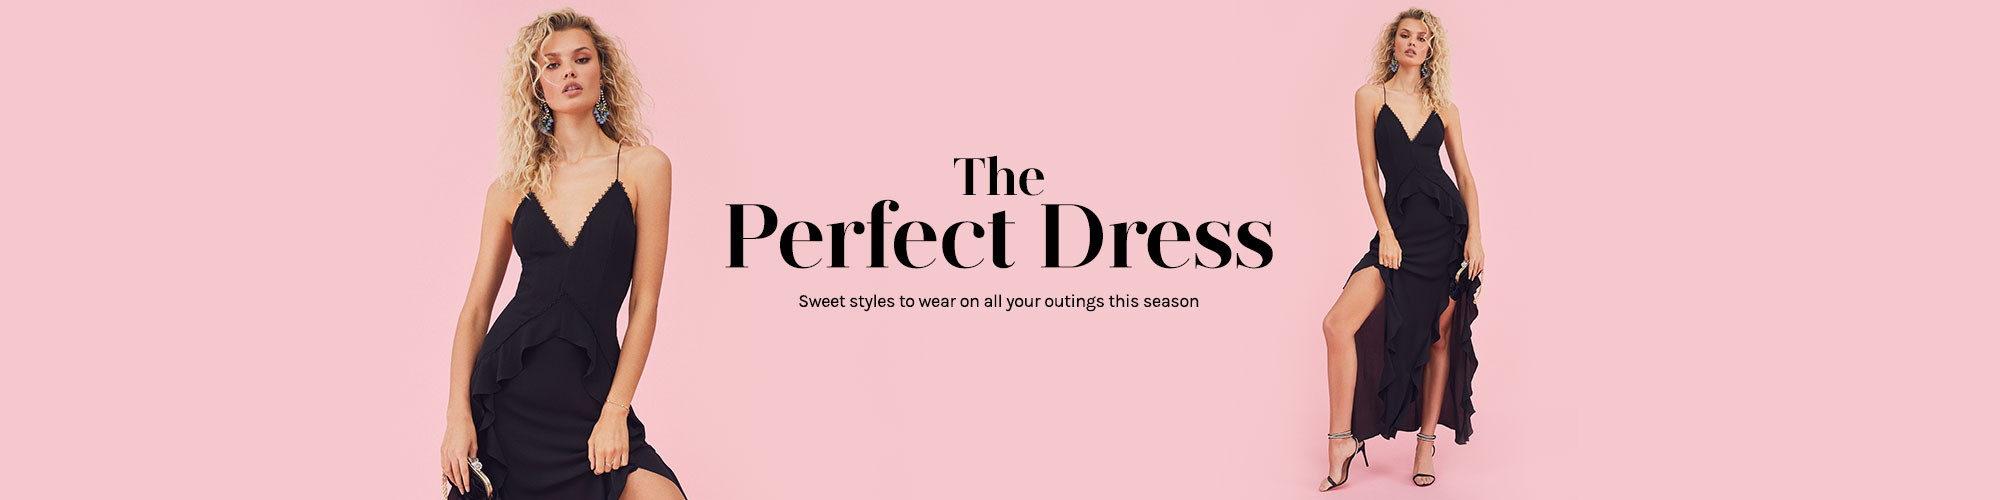 The Perfect Dress. Sweet styles to wear on all your outings this season. Shop the edit.